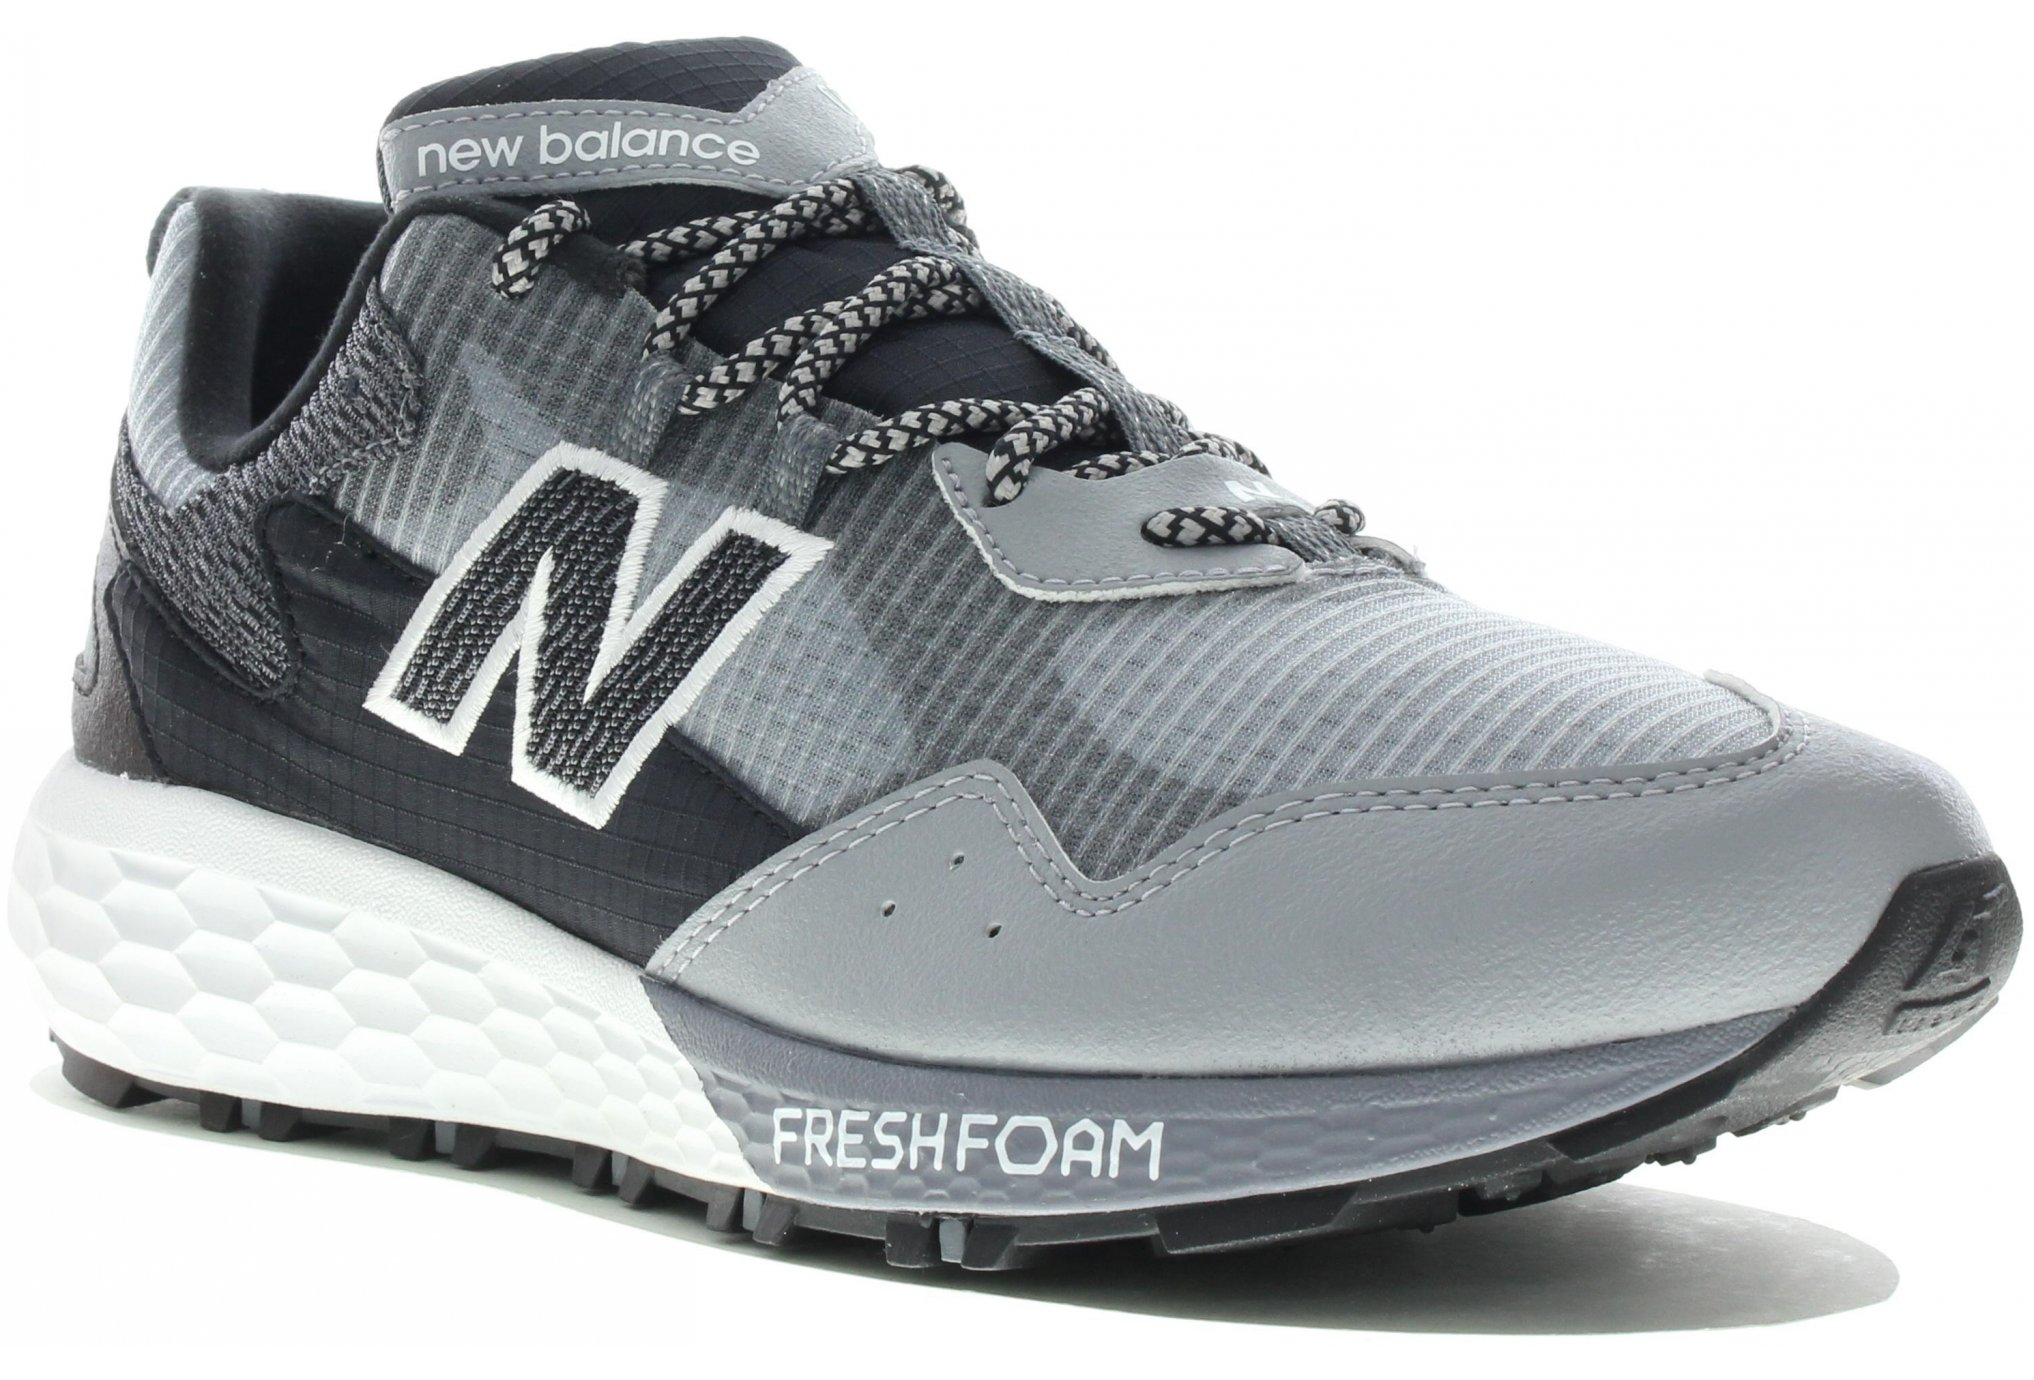 New Balance Fresh Foam Crag V2 Chaussures homme